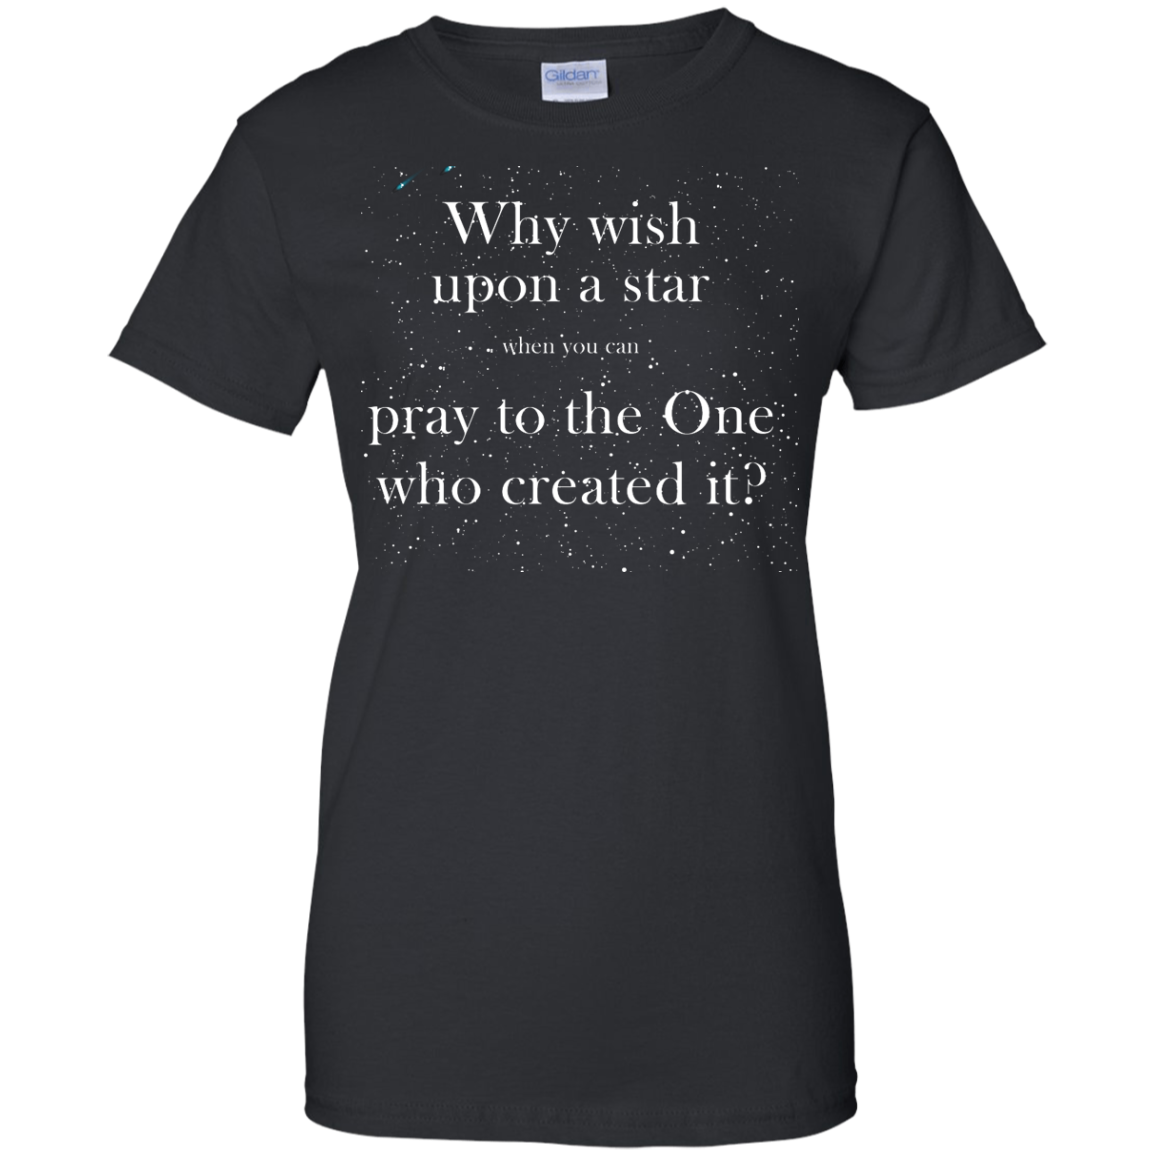 image 352px Why wish upon a star pray to the One who created it t shirts, hoodies